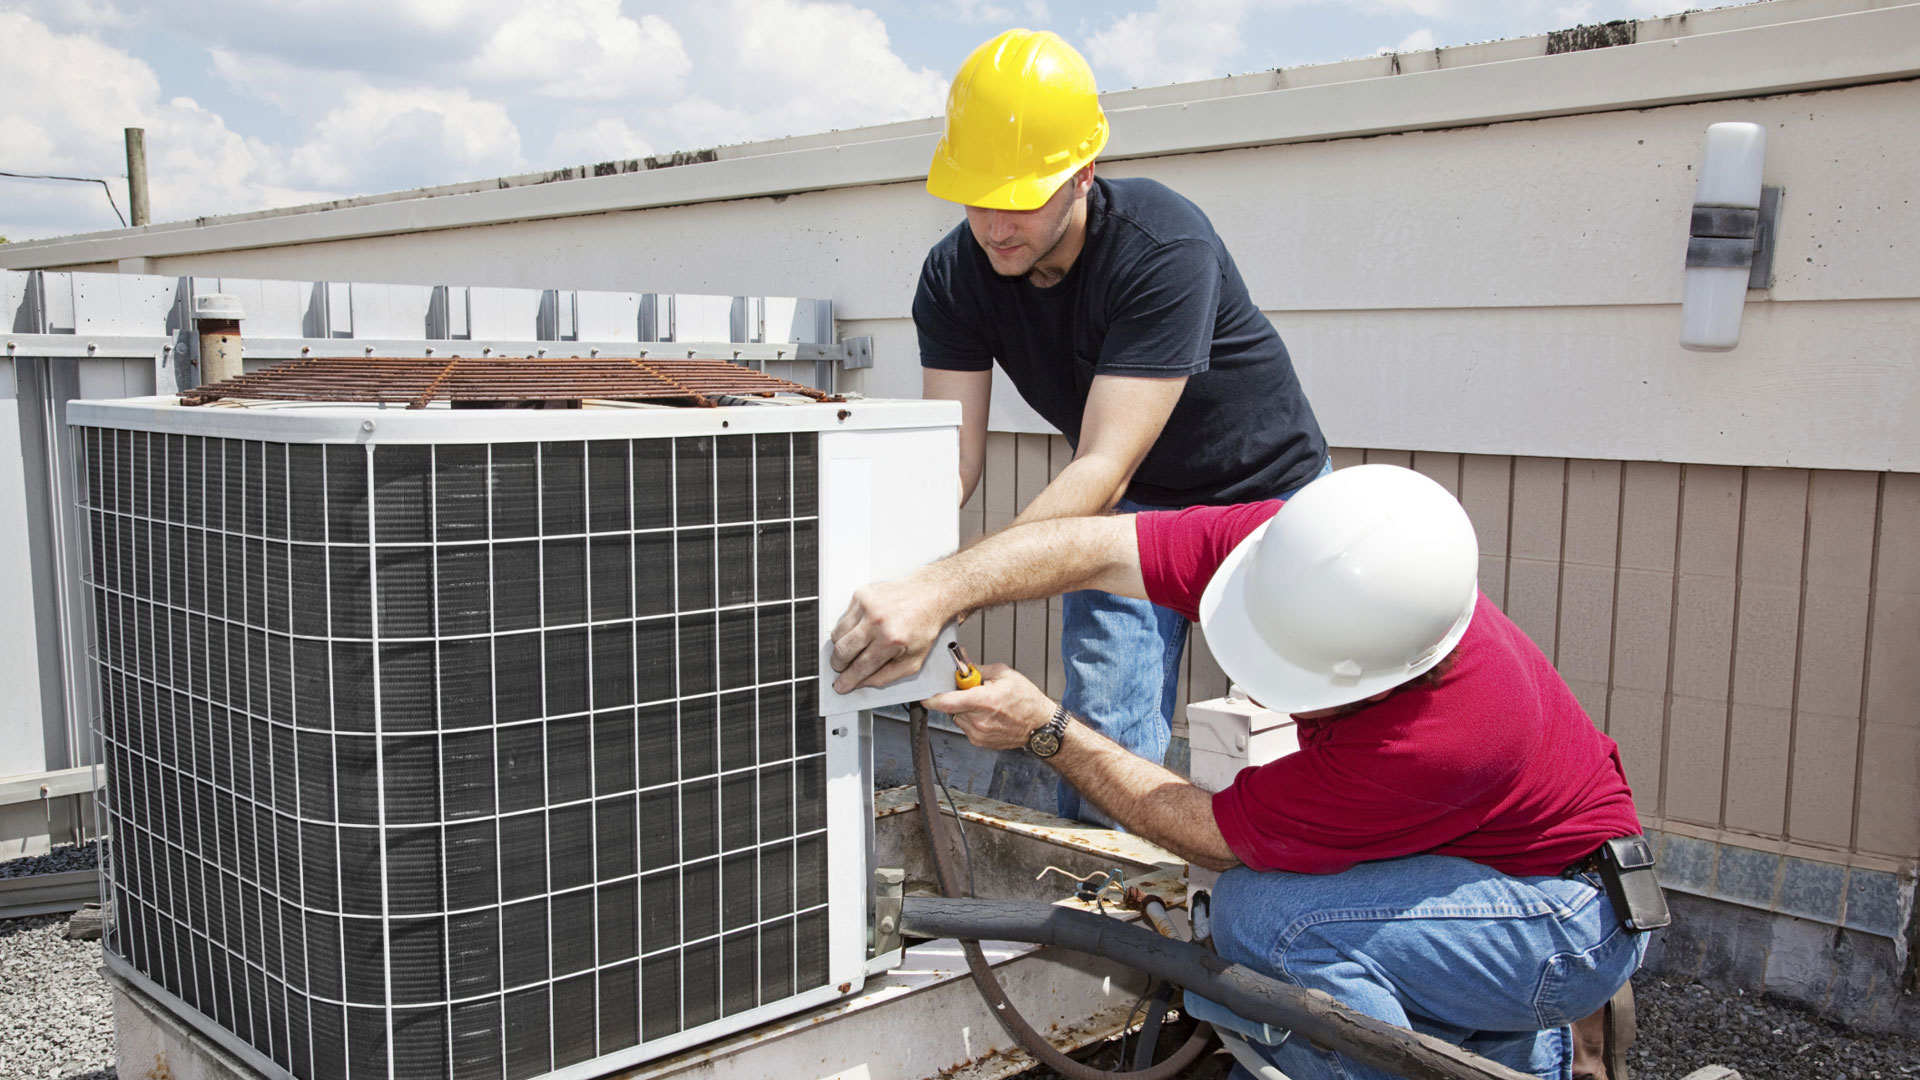 Marshfield HVAC Company: Residential Hvac Repair, Residential Hvac  Installation and Residential Hvac Service Specialists in Kingston, Duxbury  and Marshfield